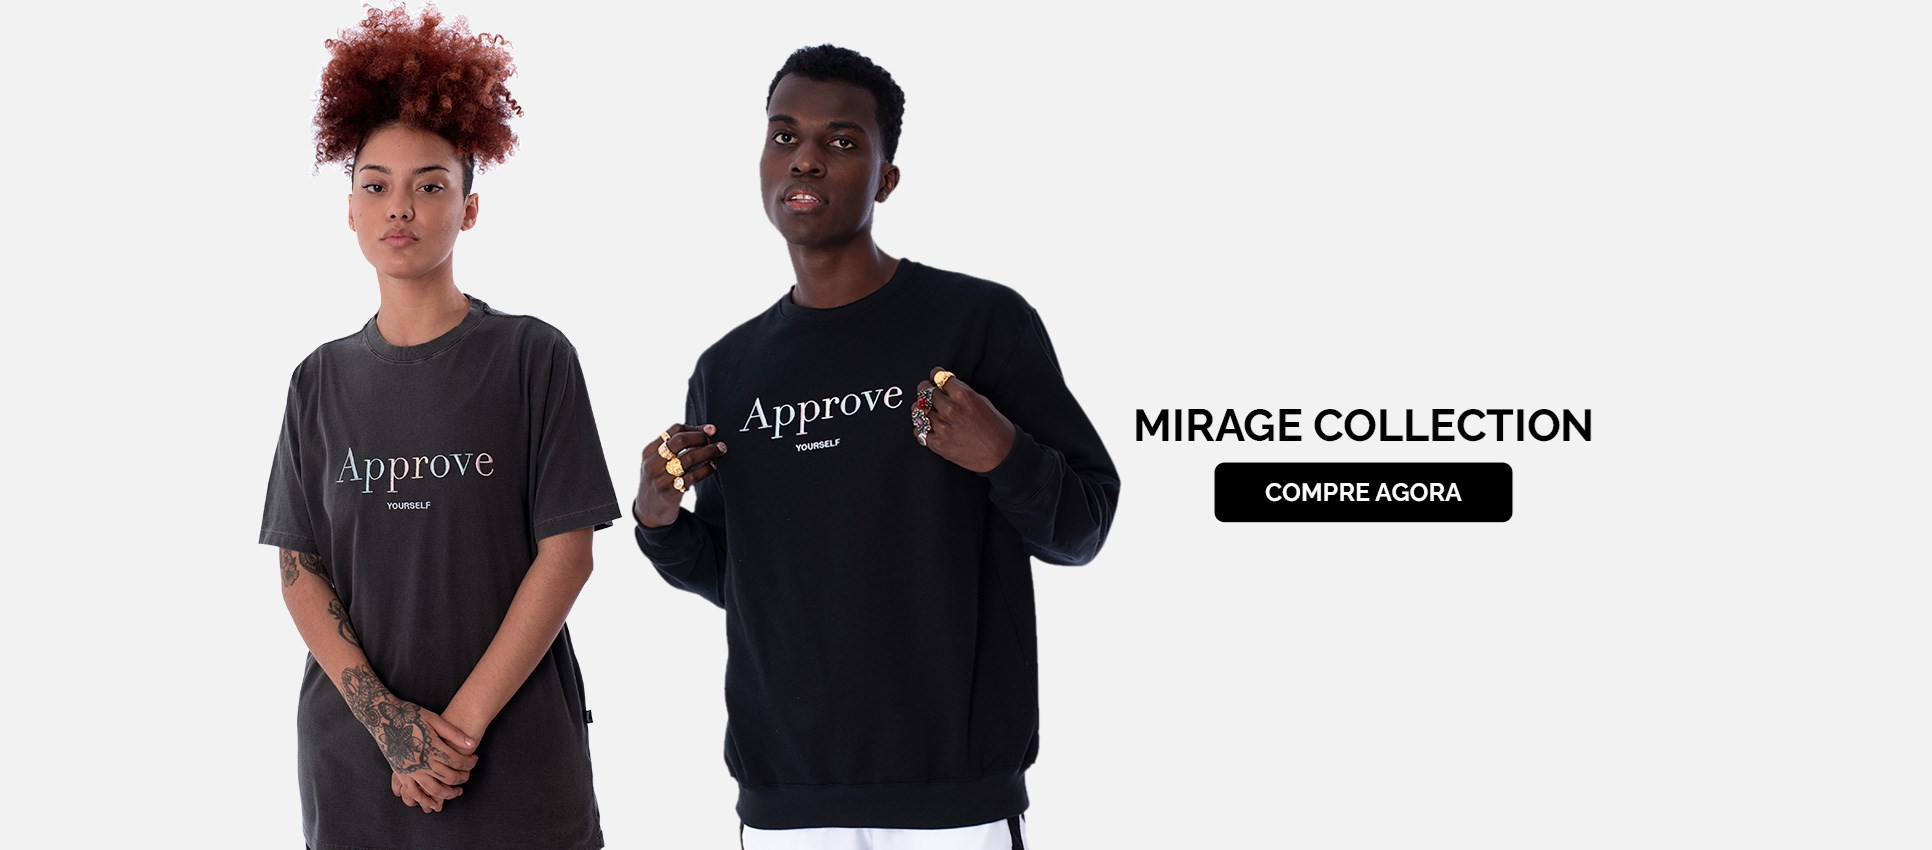 Mirage - Approve